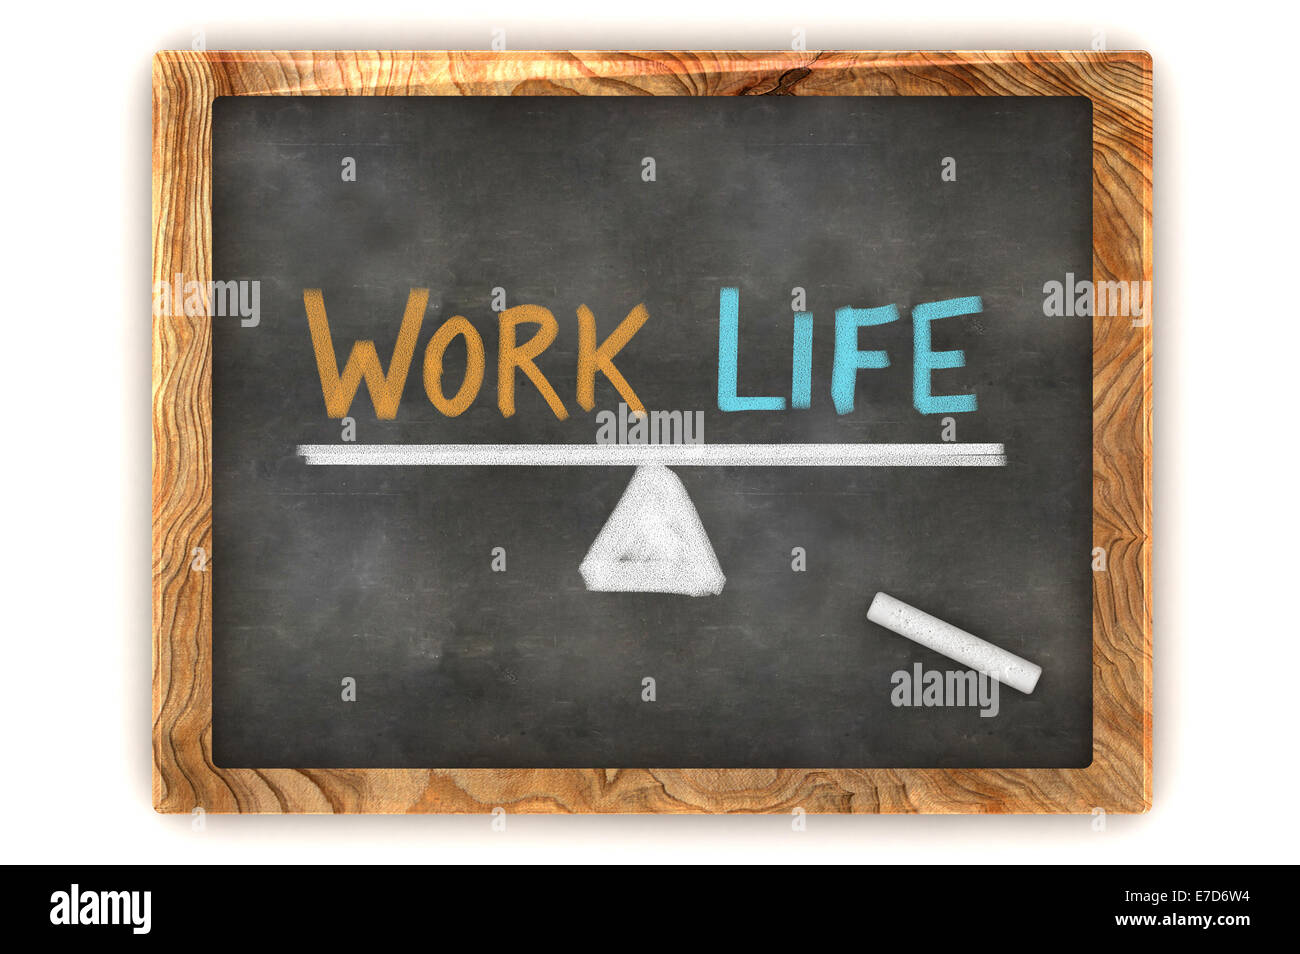 A Colourful 3d Rendered Concept Illustration showing a balance between work and life, written on a blackboard - Stock Image